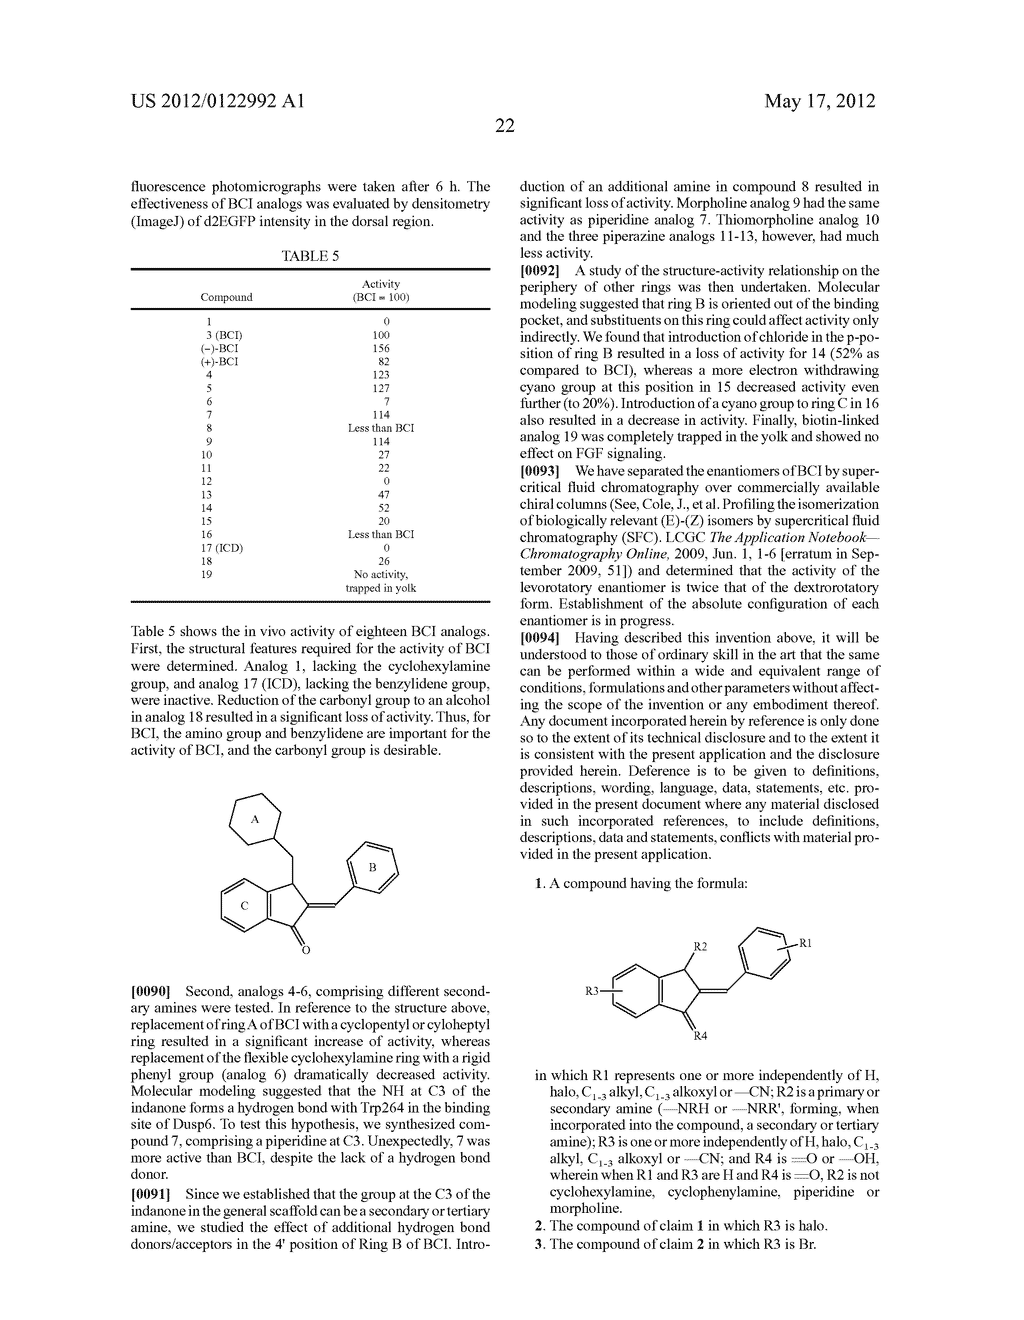 SMALL MOLECULE INHIBITORS OF Dusp6 AND USES THEREFOR - diagram, schematic, and image 42